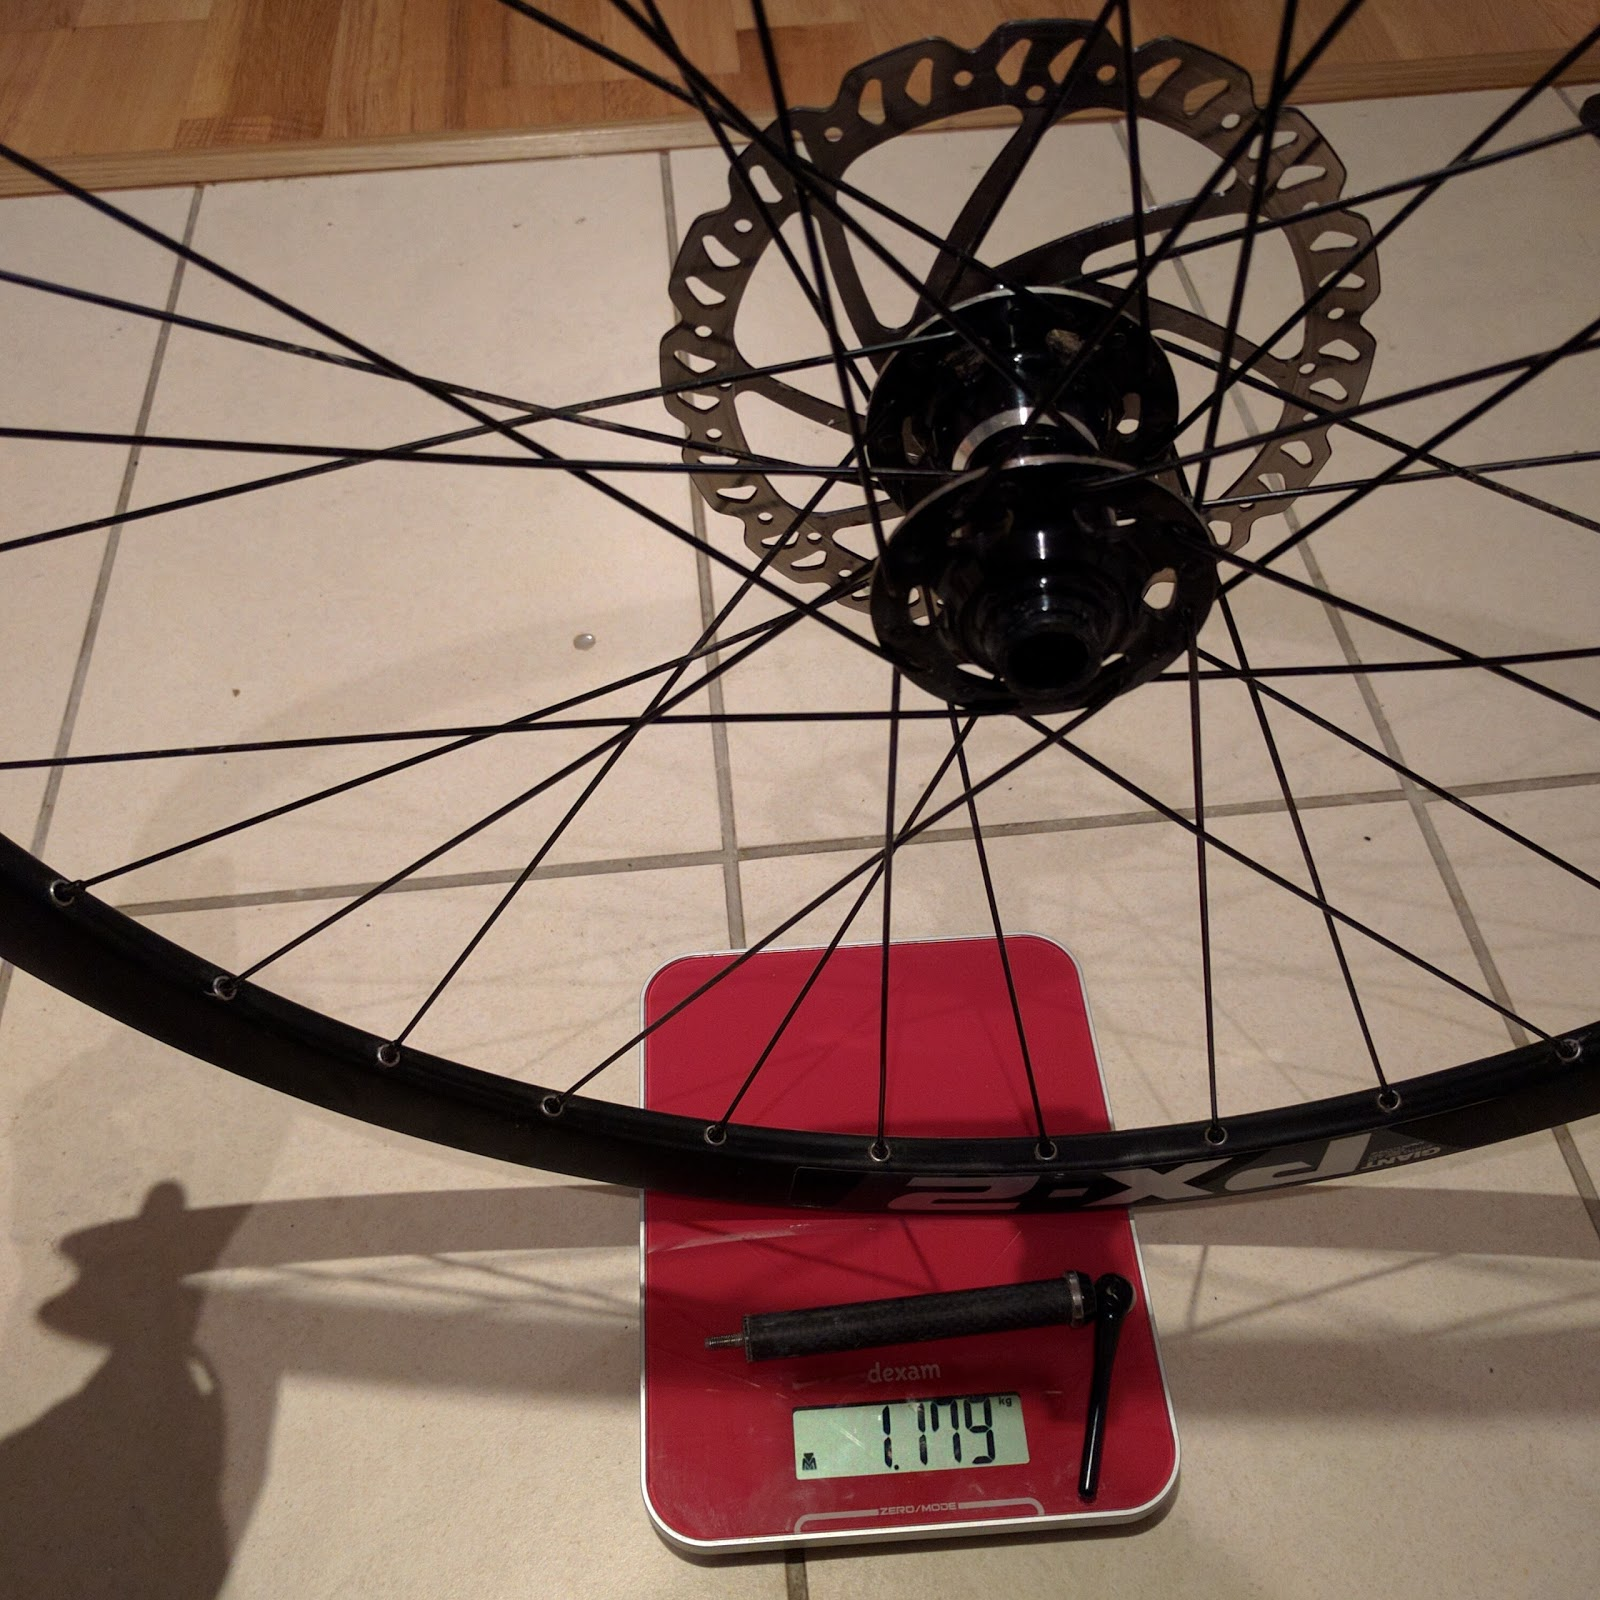 Giant PX-2 Wheelset Weight, Width and Depth | Luke GJ Potter Presents